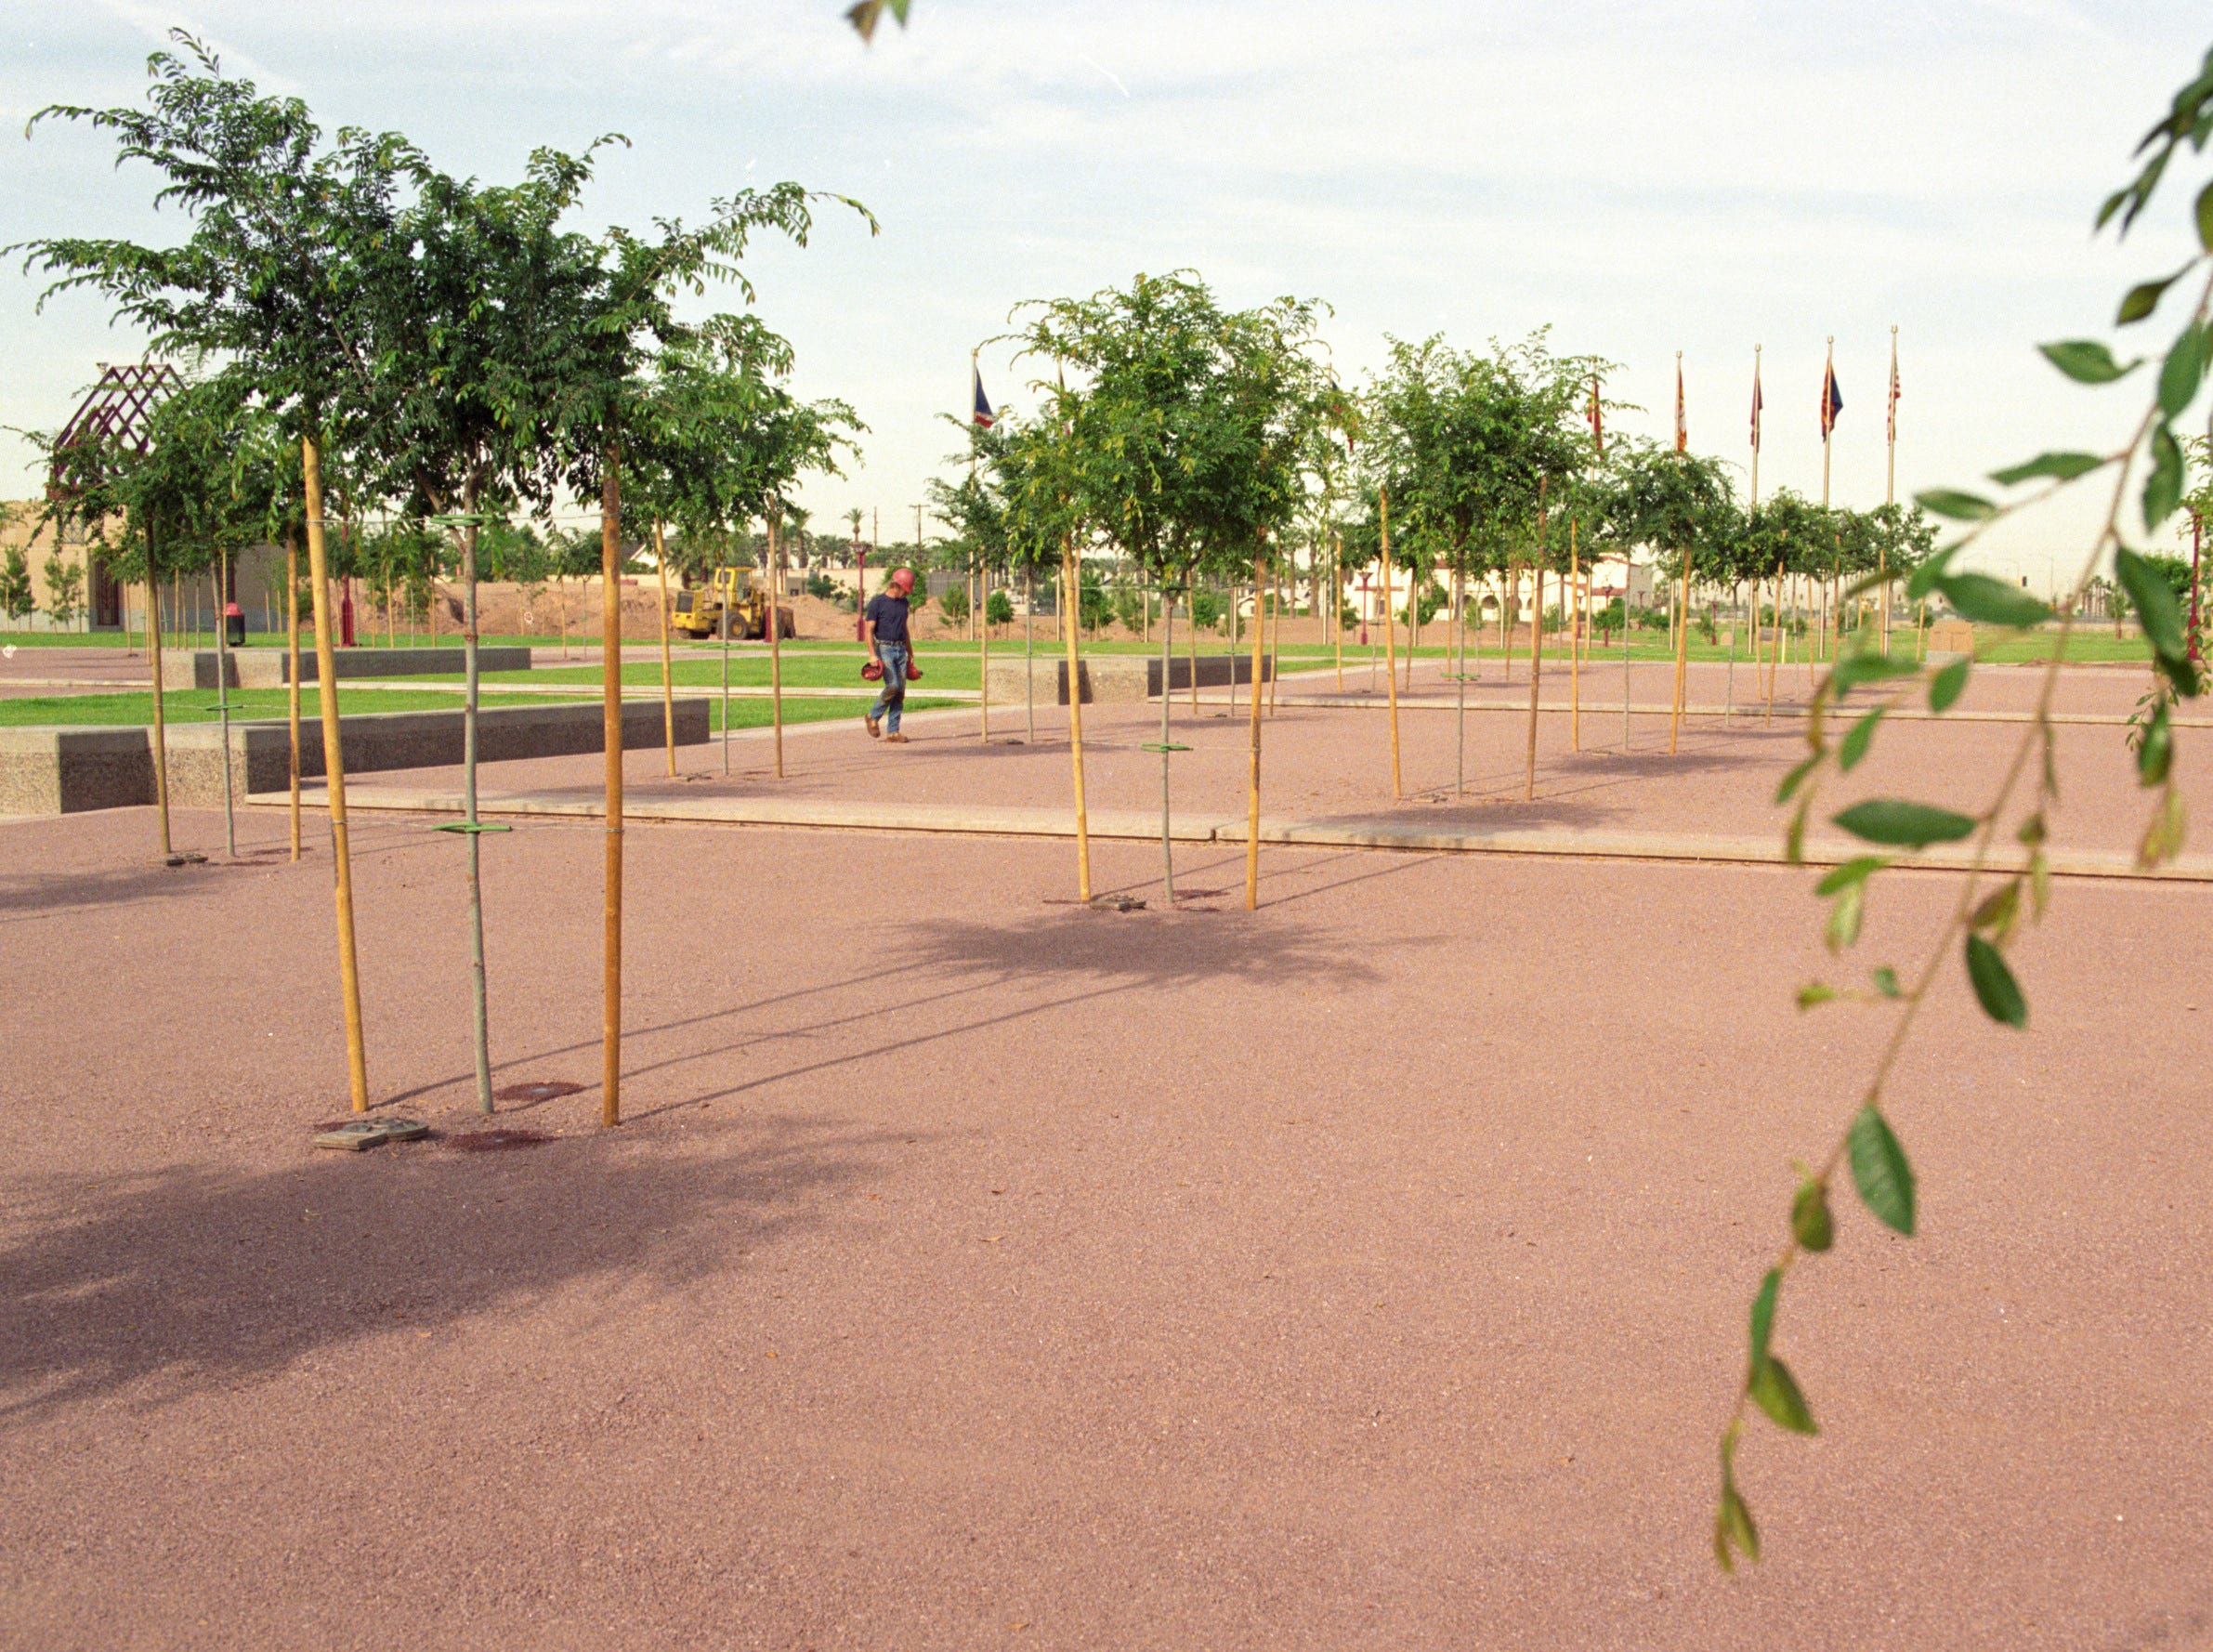 When Margaret T. Hance Park opened in 1992, trees were planted with hopes of creating a tree bosque.